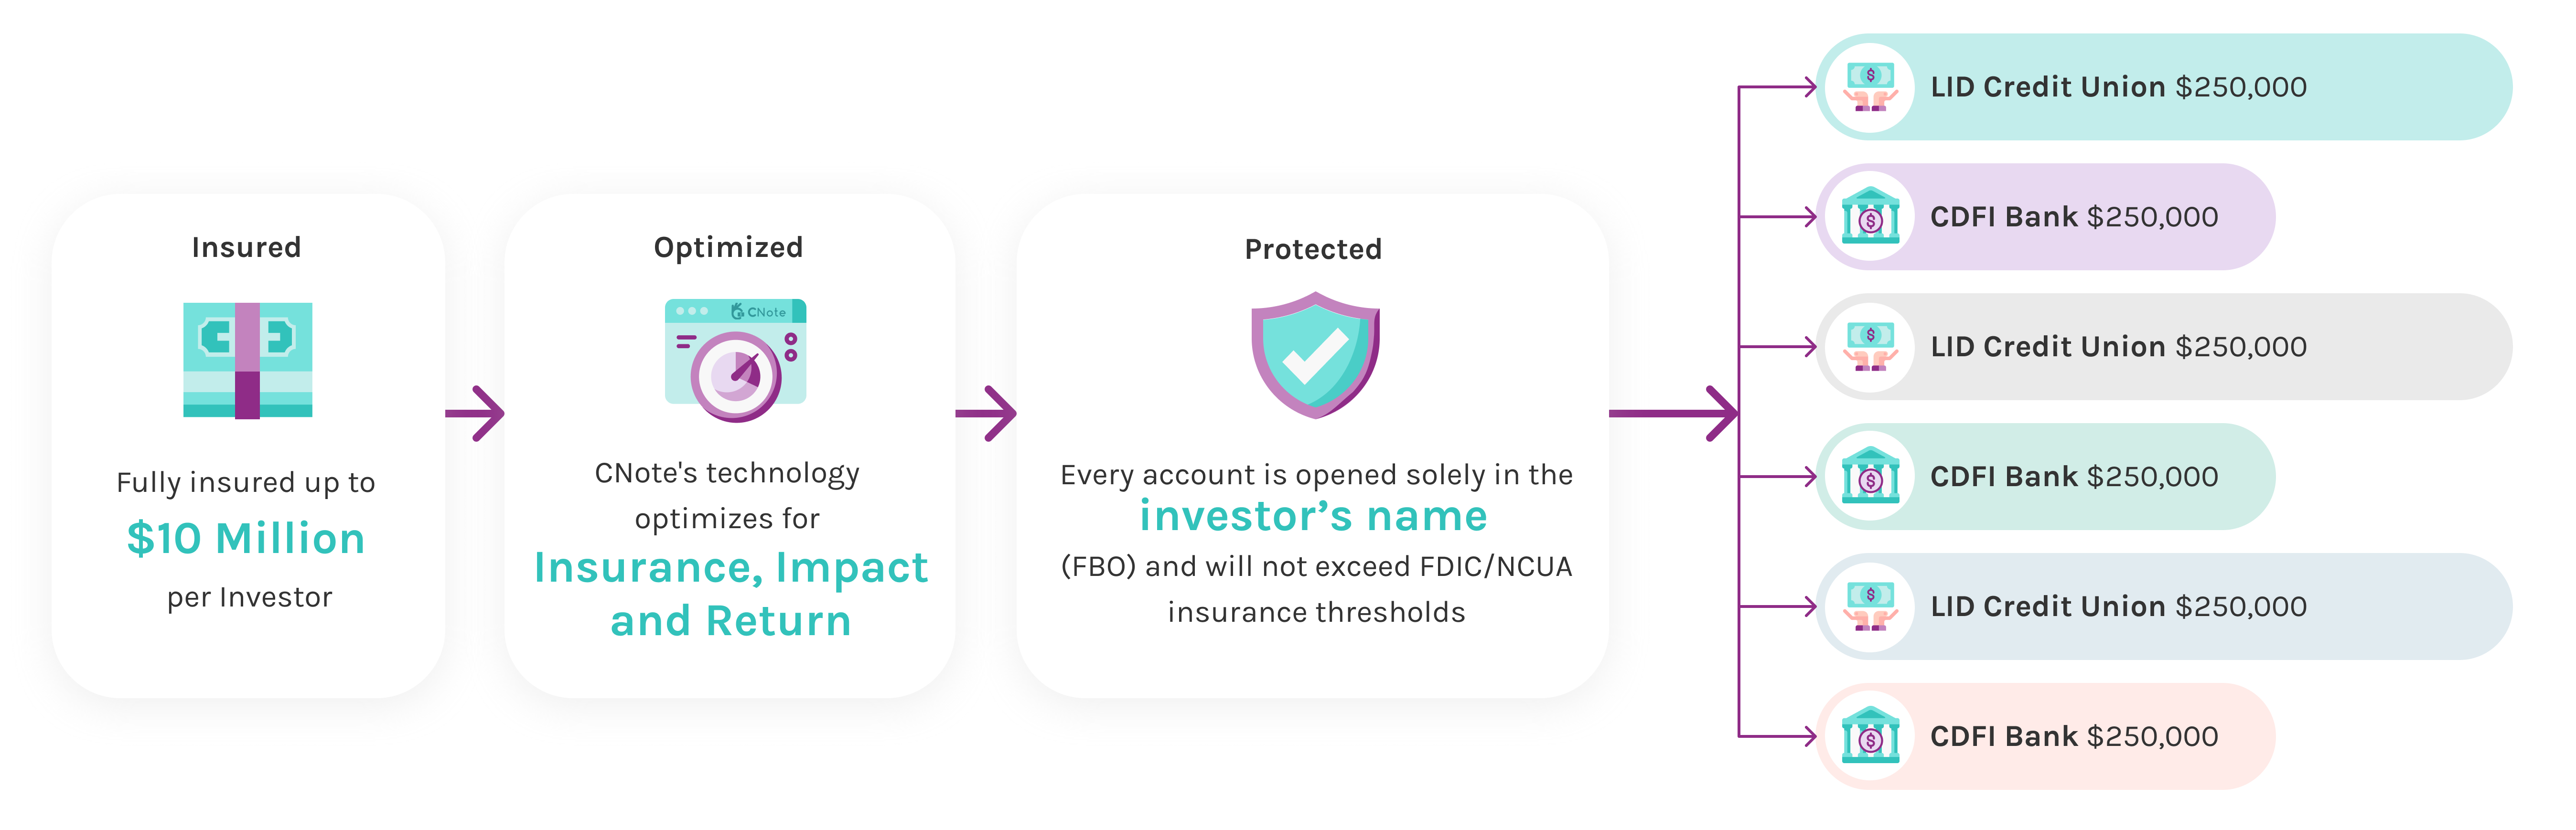 This explains the flow of funds and how CNote makes sure promise account funds are optimized for insurance, impact and return